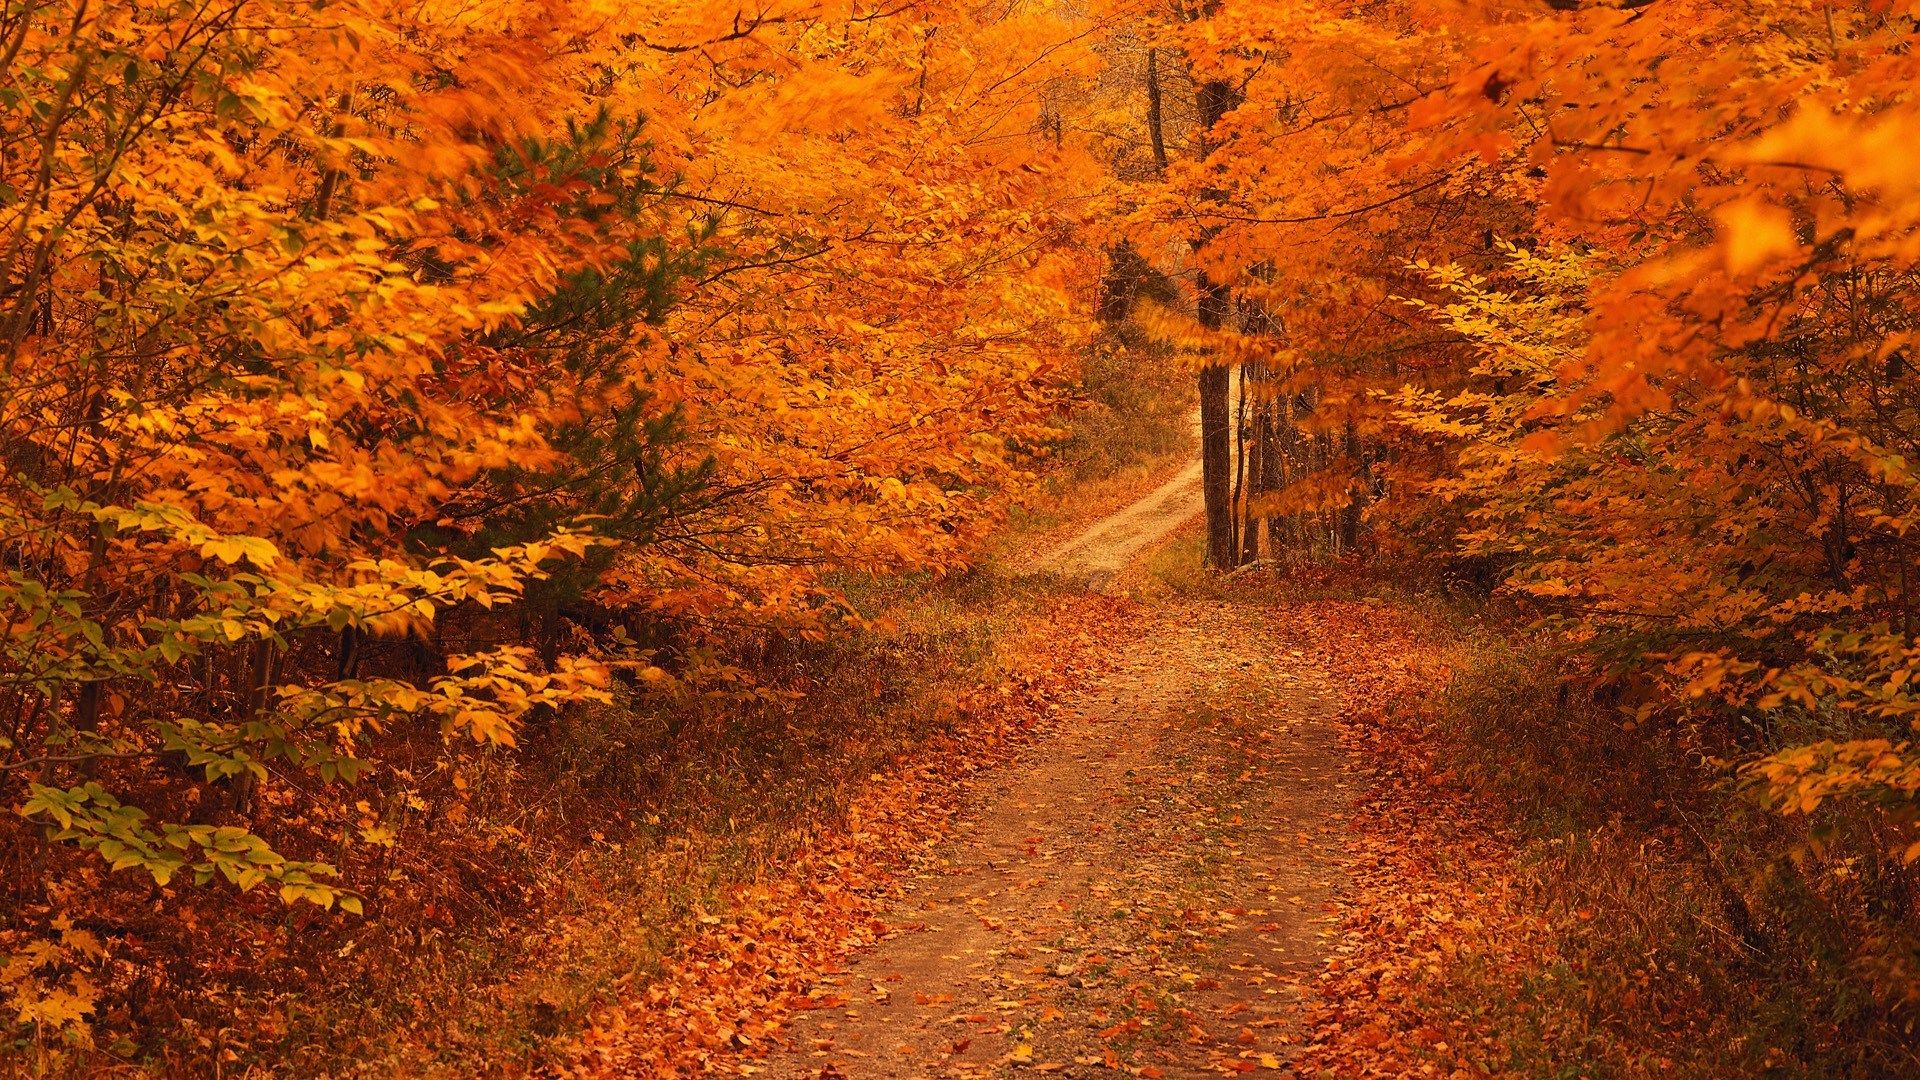 Fall Background Hd The Great Outdoors Nature Fall Background